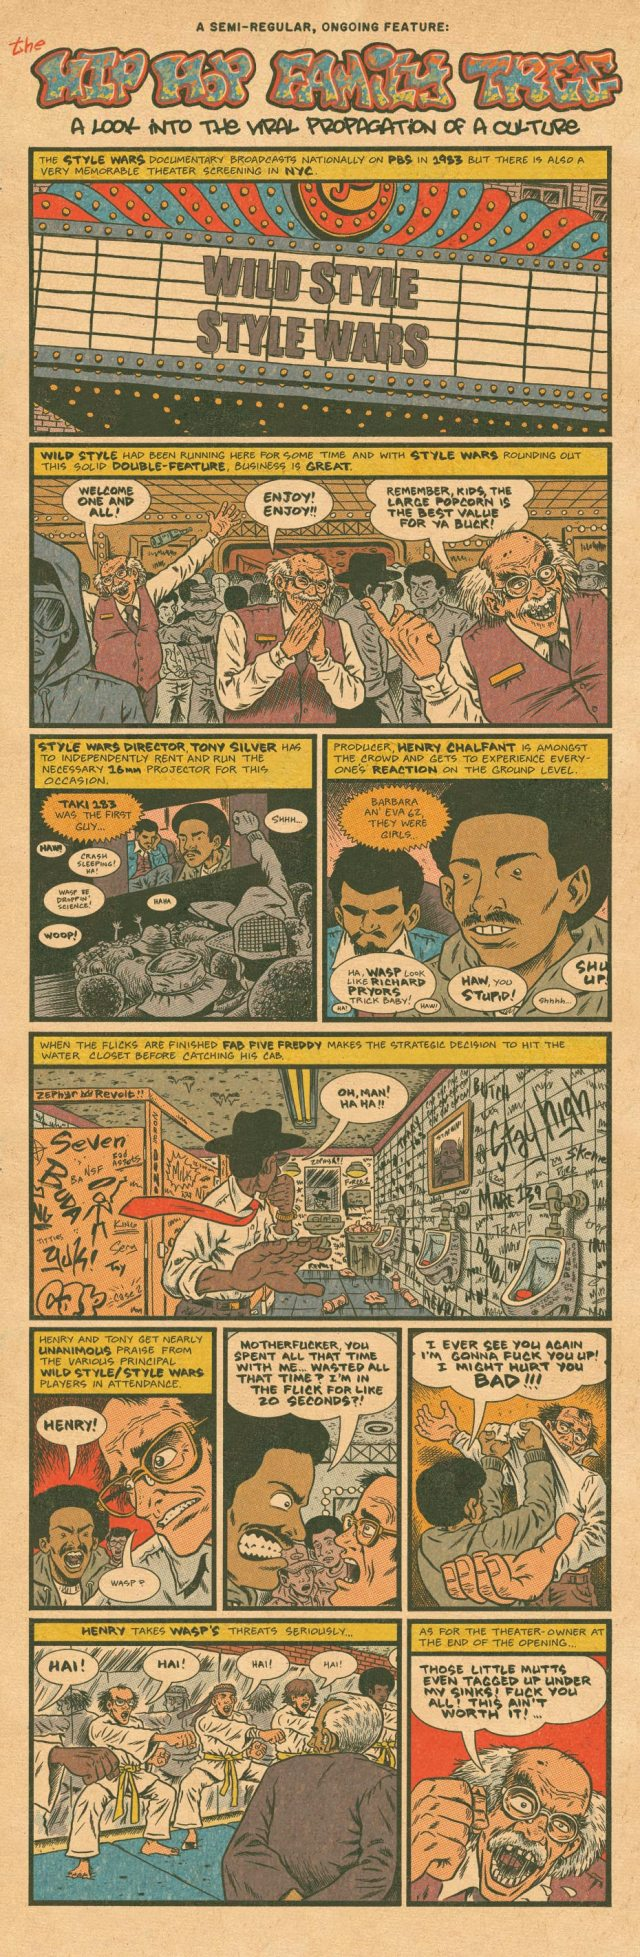 hip-hop-strip-99